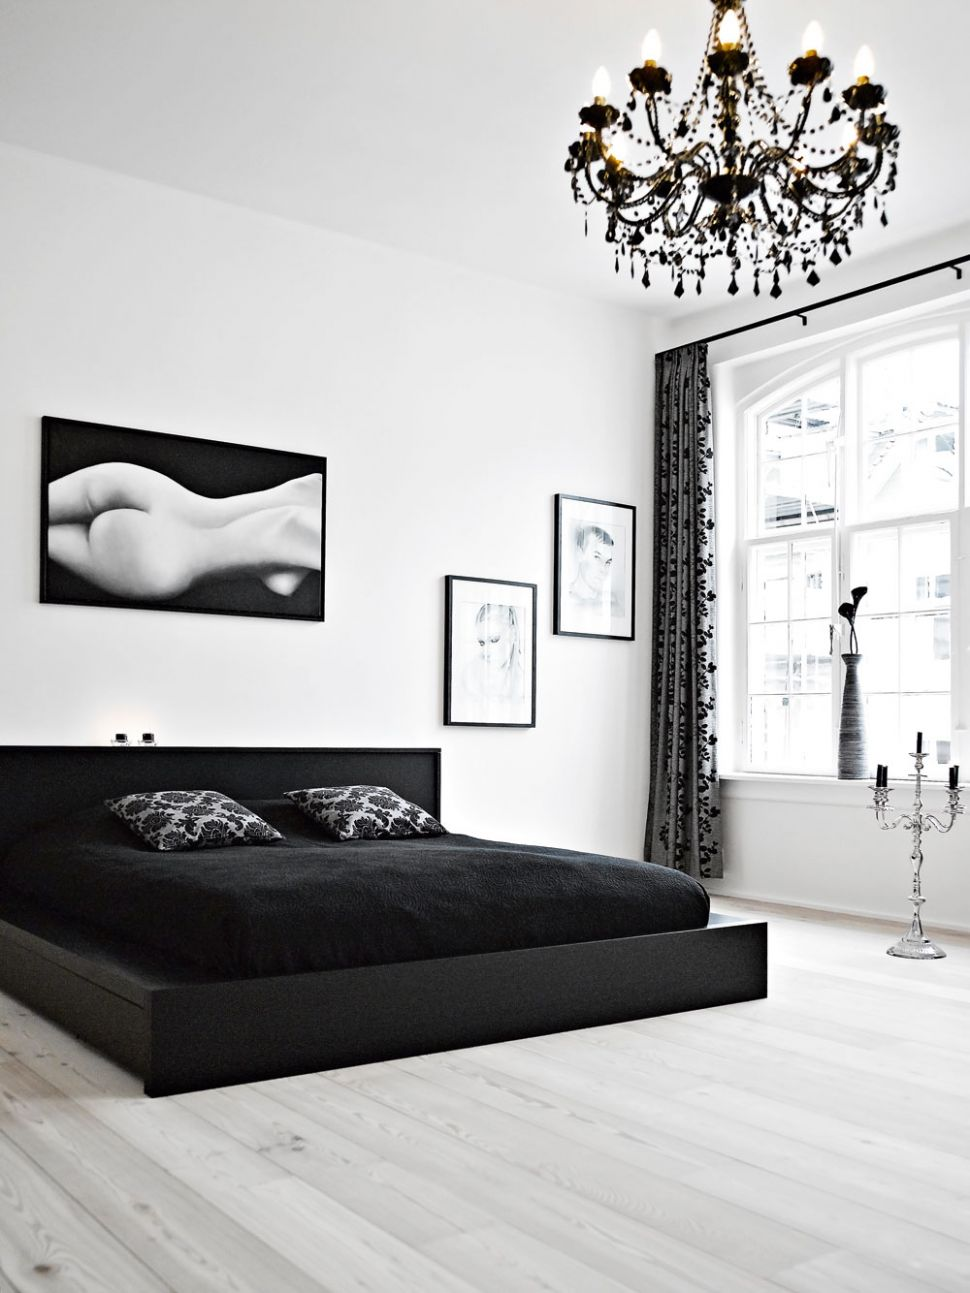 11 Beautiful Black & White Bedroom Designs - bedroom ideas black and white